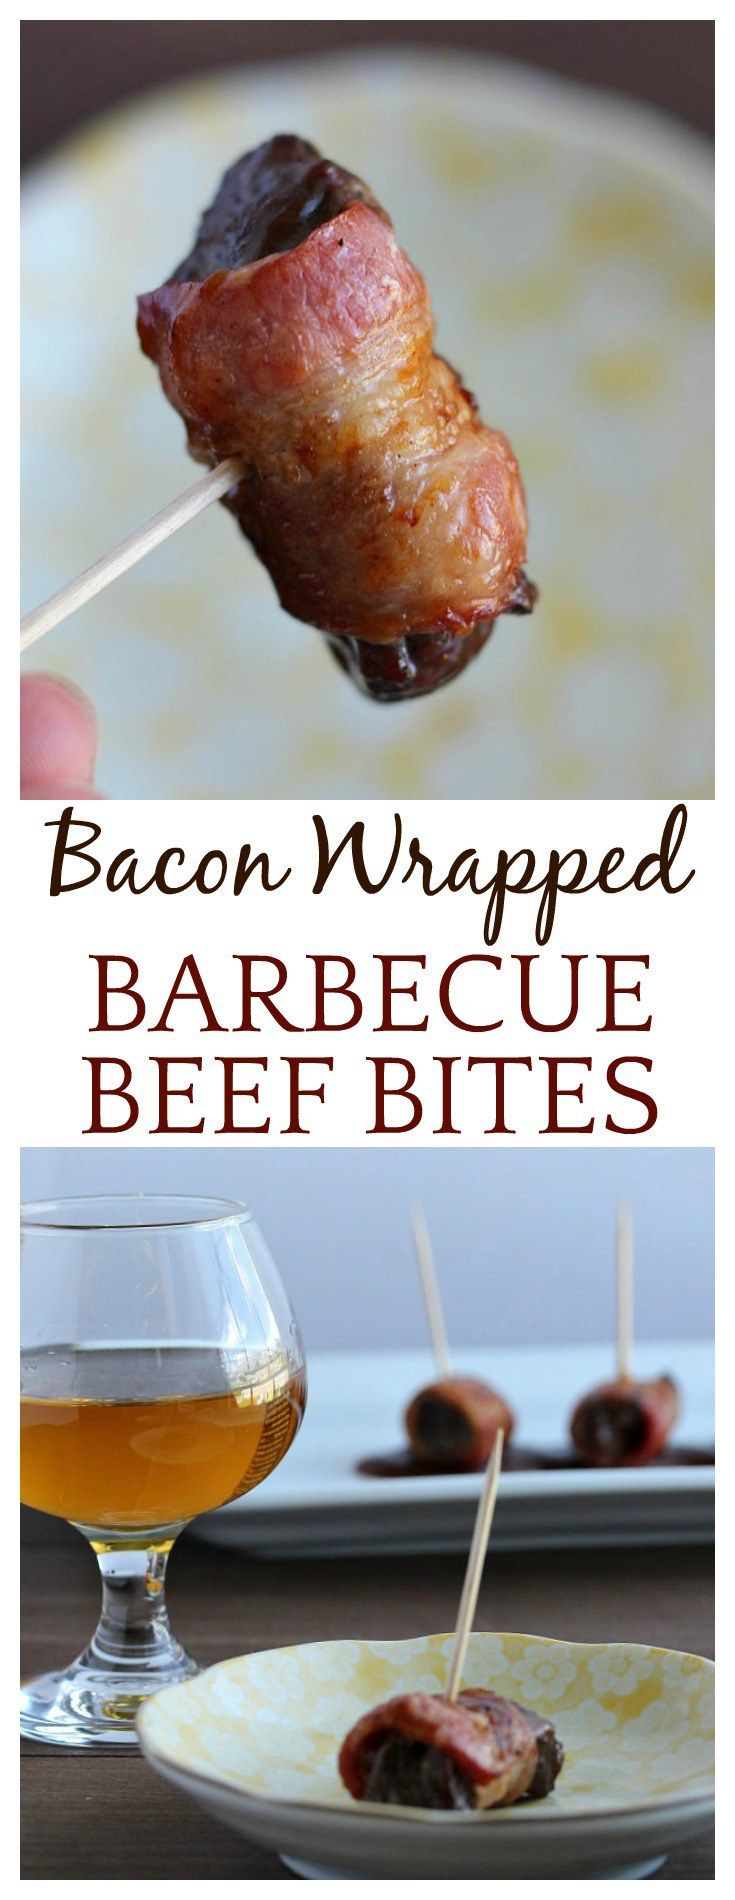 Bacon Wrapped Barbecue Beef Bites make a great appetizer recipe for entertaining, especially when paired with a perfectly matched whiskey!